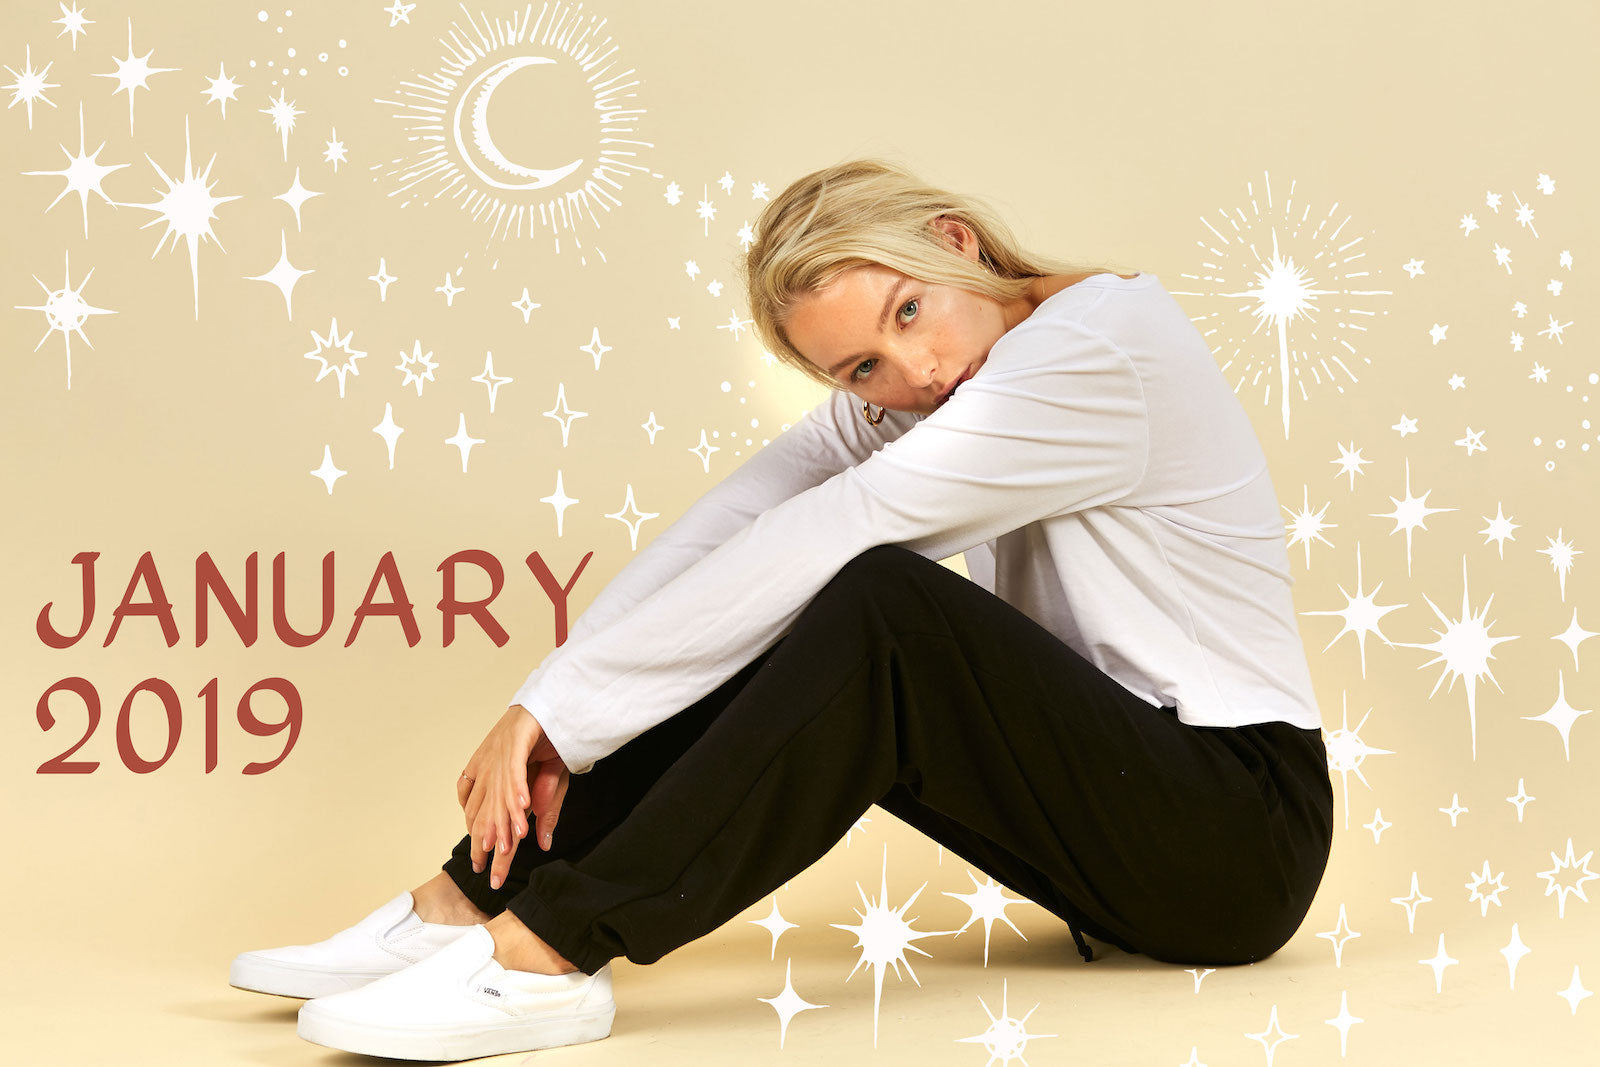 january horoscopes 2019